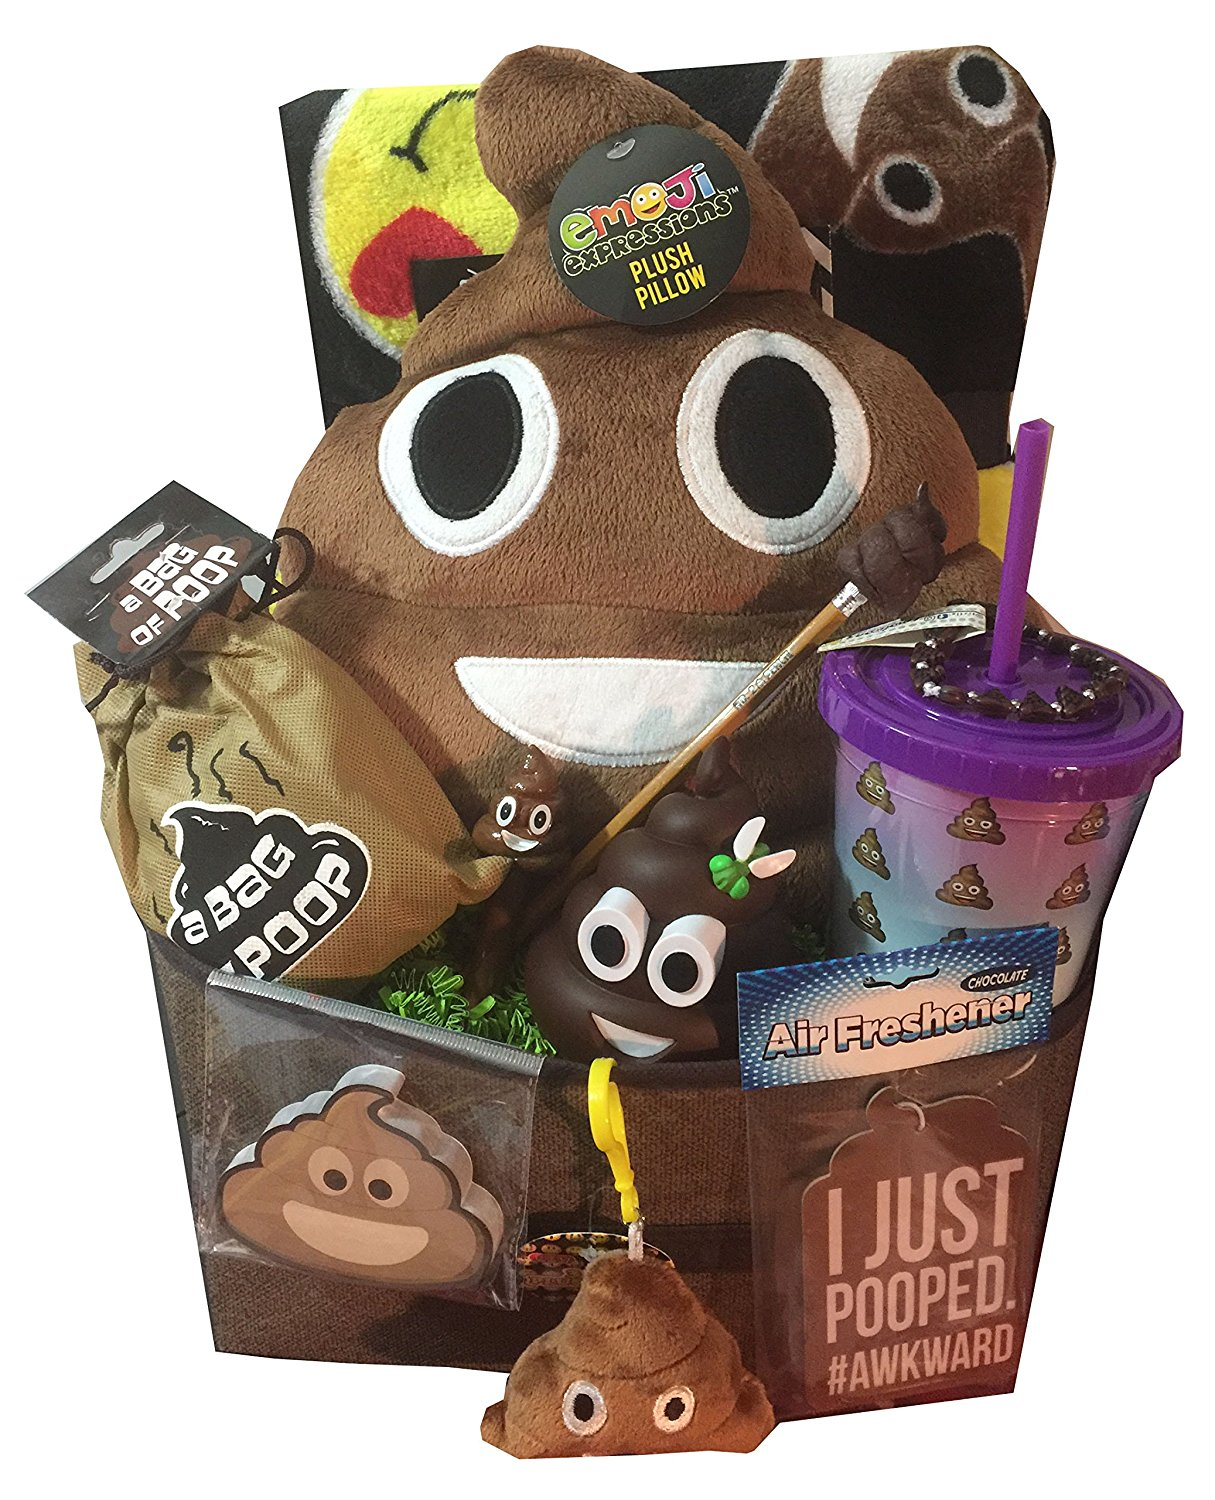 Ultimate CRAPPY POO GIFT BASKET includes Emoji Poop Pillow and alot of other Crap - Ideal for Poop Obsessed, for Christmas, Constipated, Shts & Giggles, Get Well or Just Because